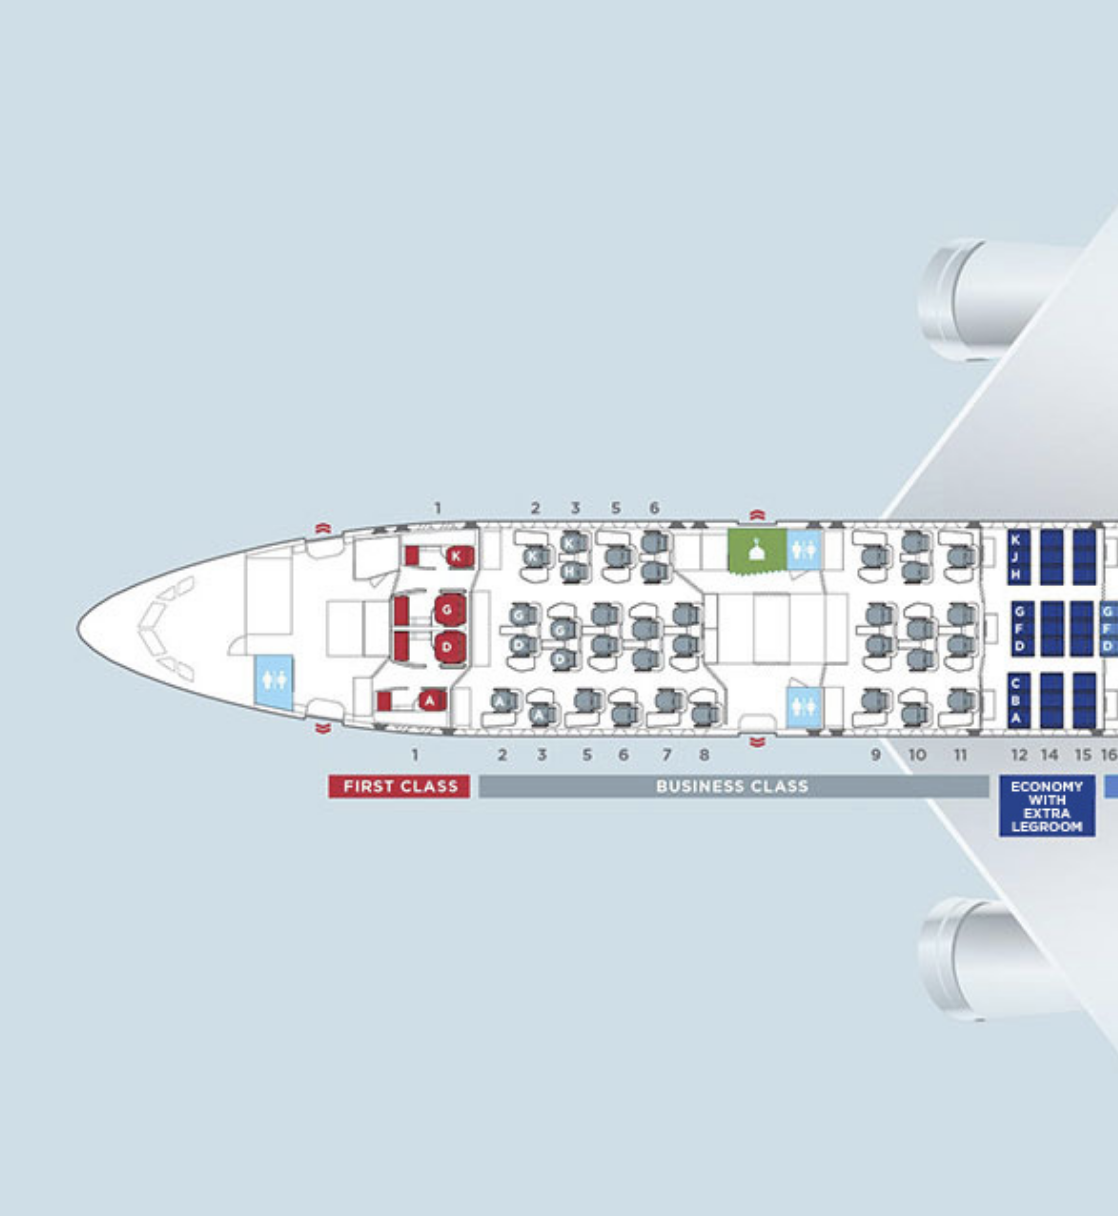 Malaysia Airlines A350 First and Business Class cabin configuration